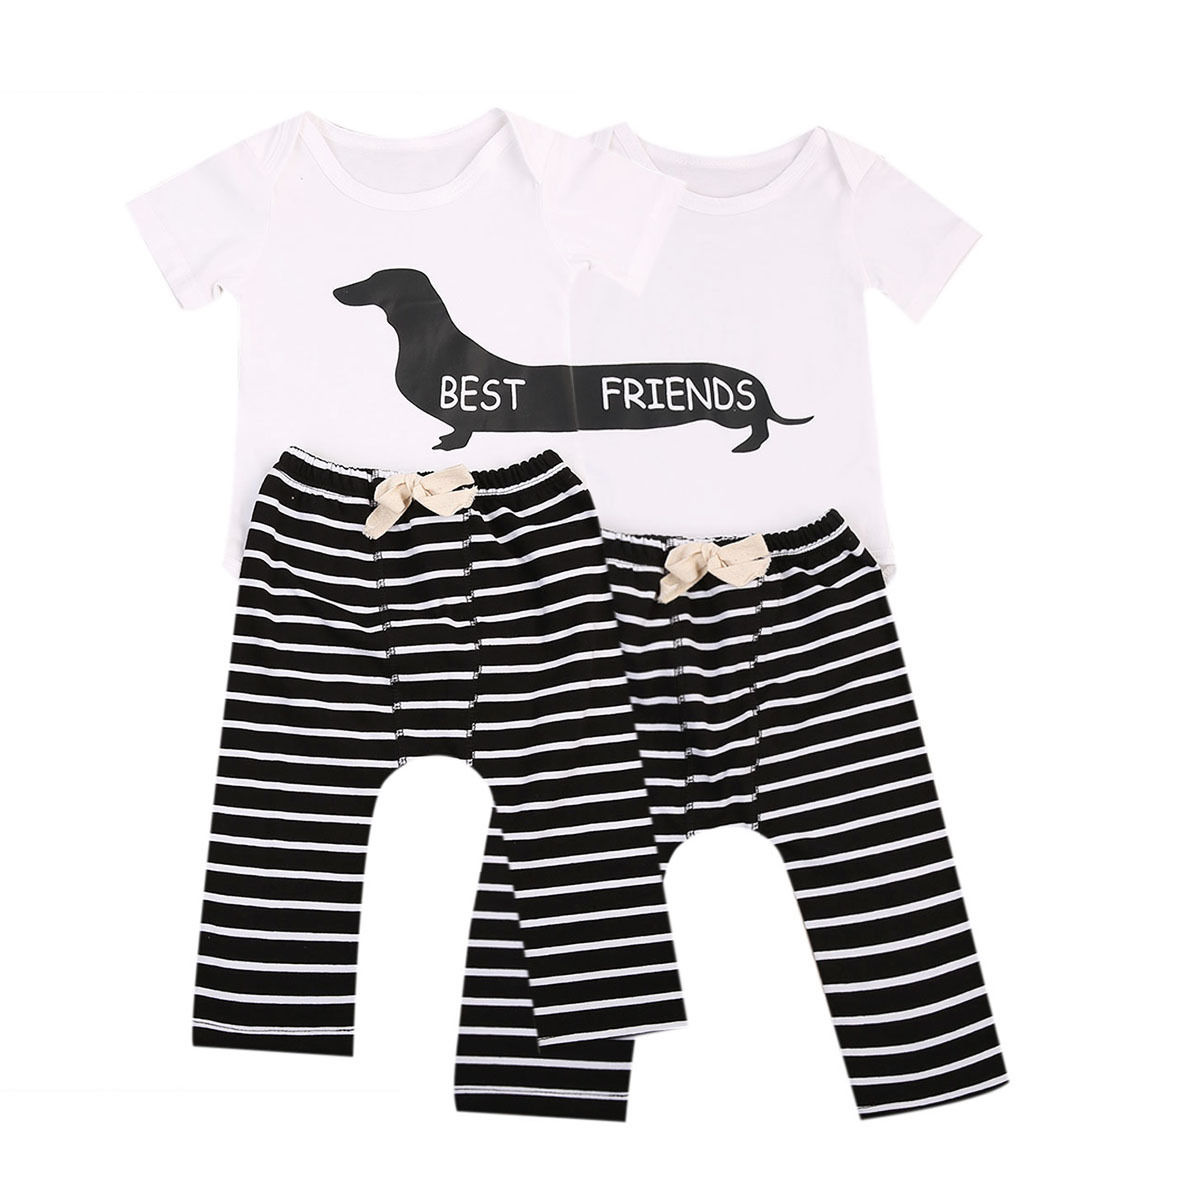 Best Frineds Letters Printing New Infant Baby 2Pcs Animal Bodysuit+Striped Pants Toddler Boy Girl Outfit 0-24M Clothing Set